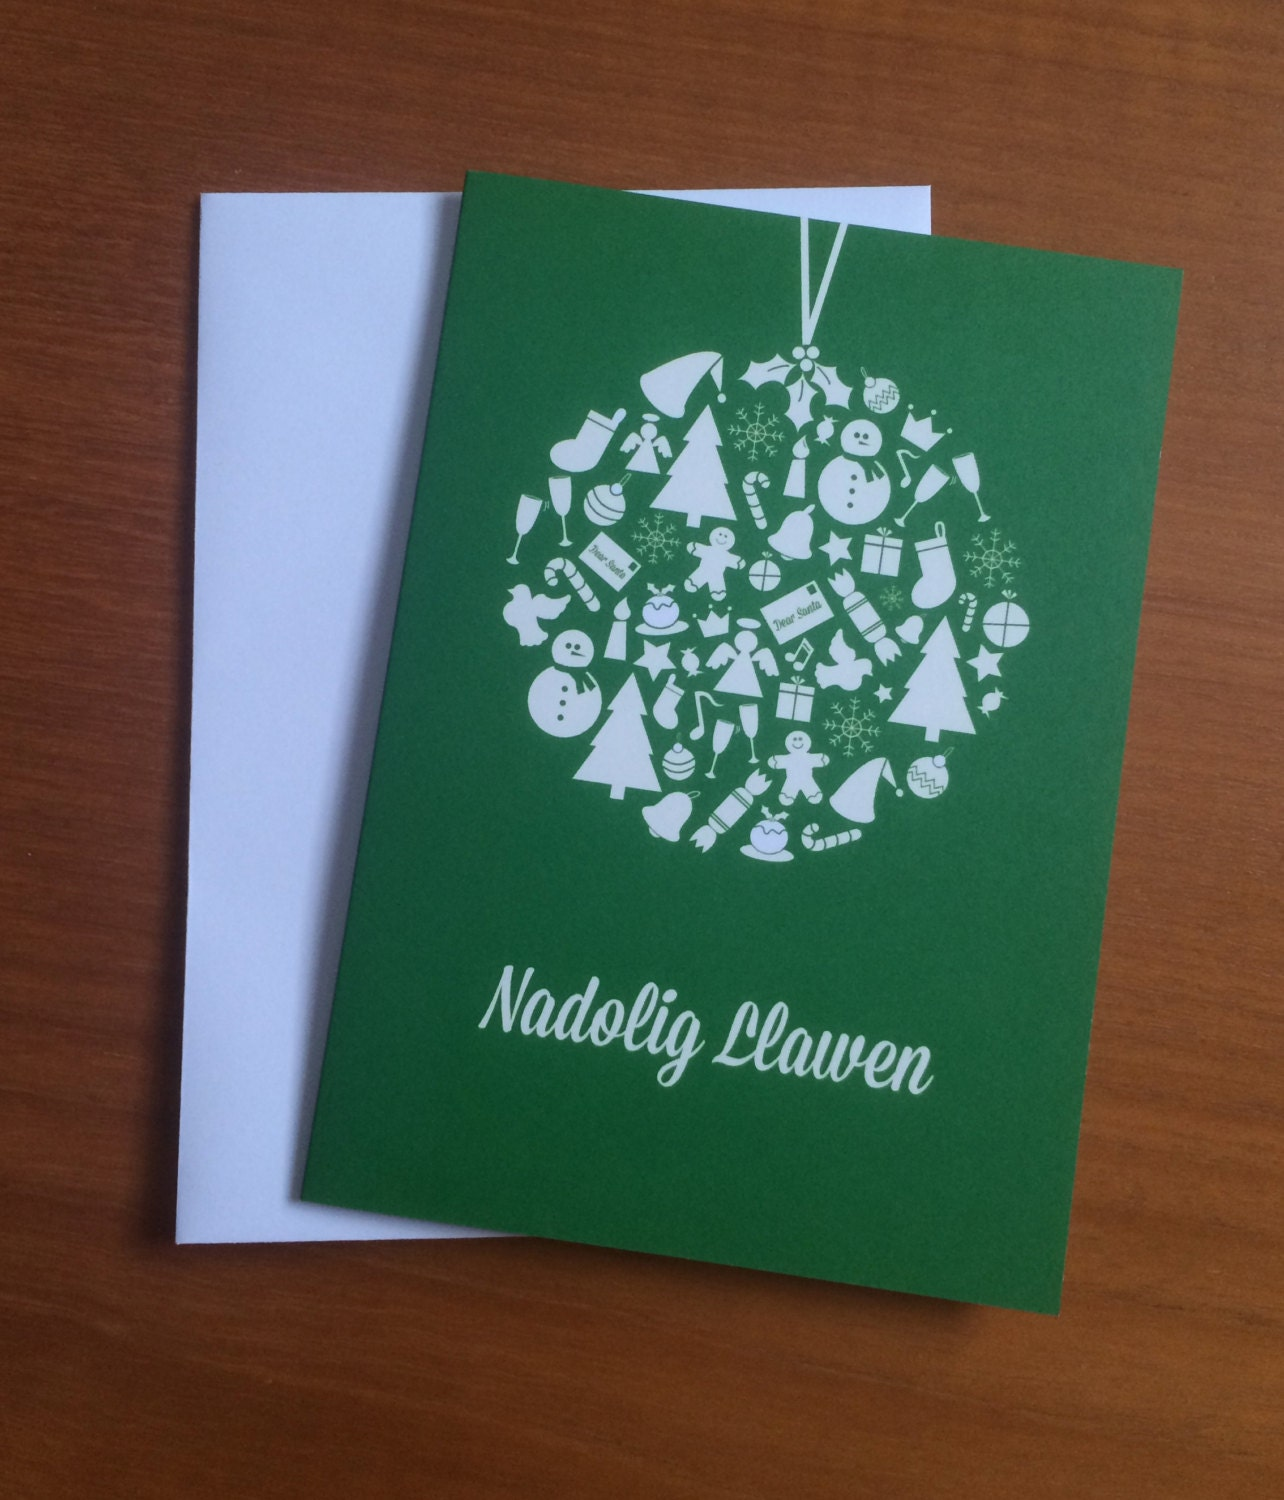 Nadolig llawenmerry christmas welsh christmas card greetings nadolig llawenmerry christmas welsh christmas card greetings card kristyandbryce Image collections